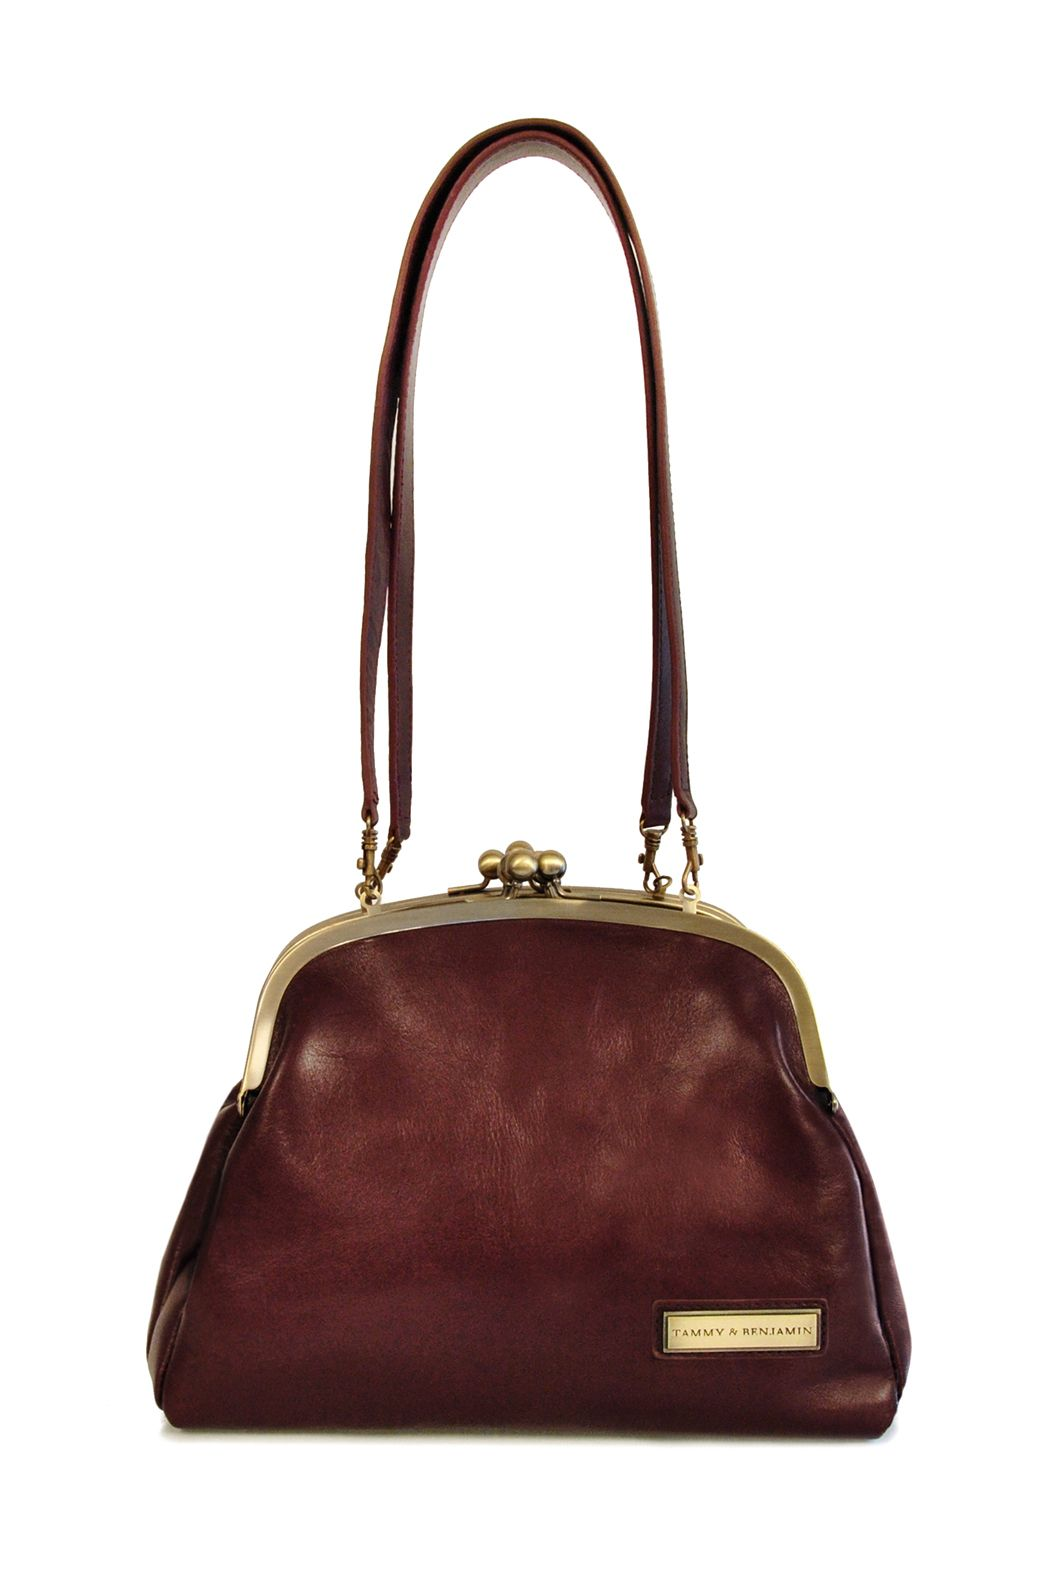 f65f30dfcd love this leather shoulder bag reminiscent of grandma s purse. rich leather  and great hardware in a sweet shape